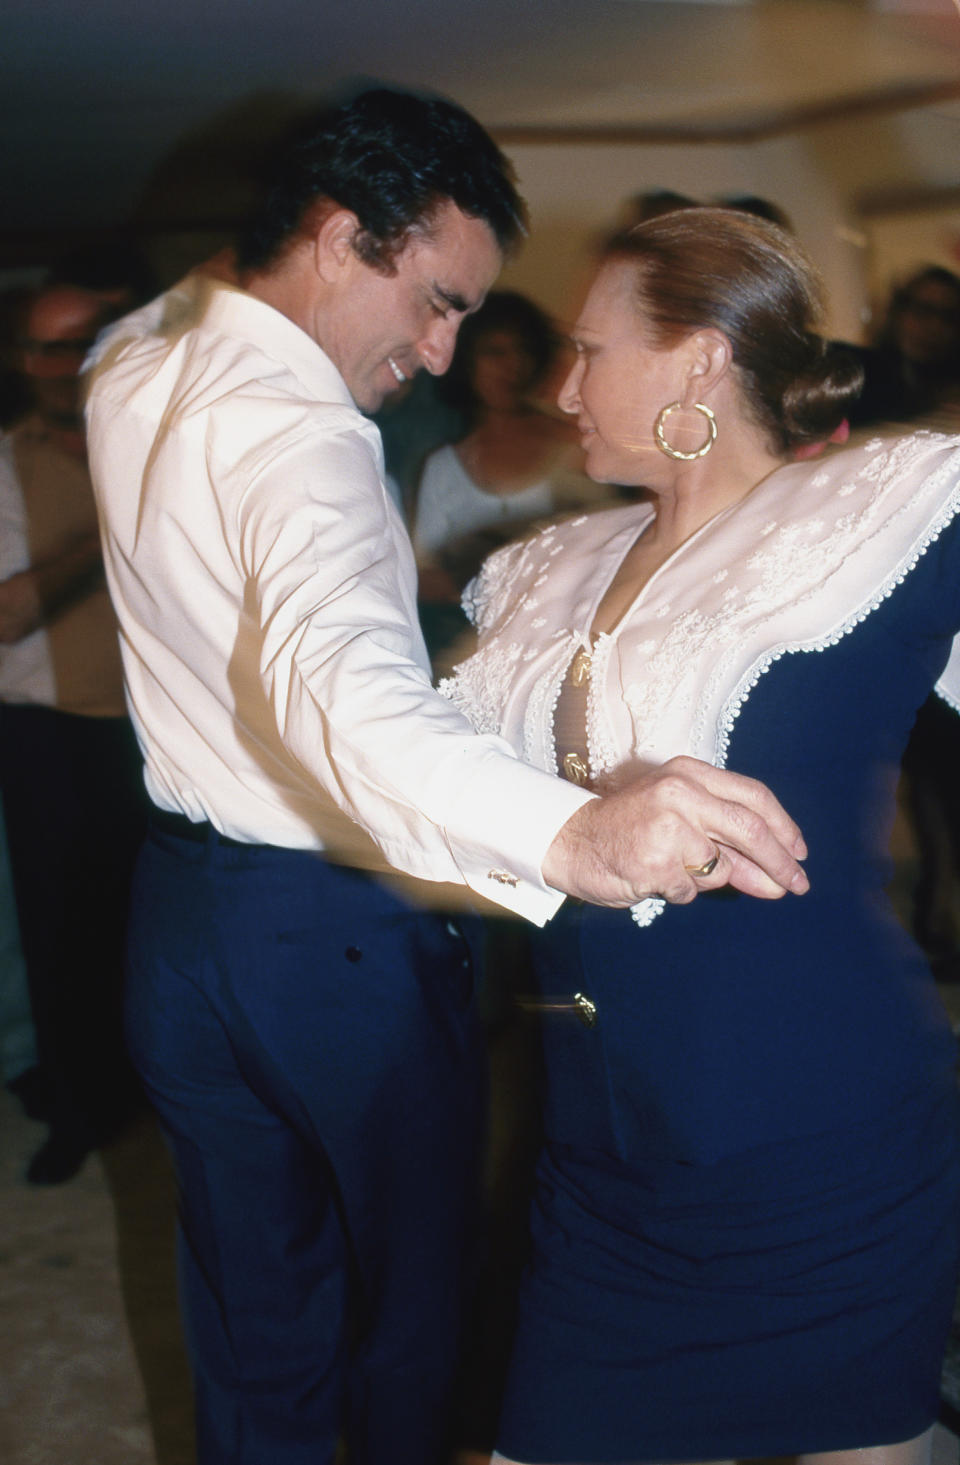 Spanish bullfighter Jiose Ortega Cano dancing with his wife Spanish actress and singer Rocio Jurado, Madrid, Spain, 1994. (Photo by Gianni Ferrari/Cover/Getty Images)